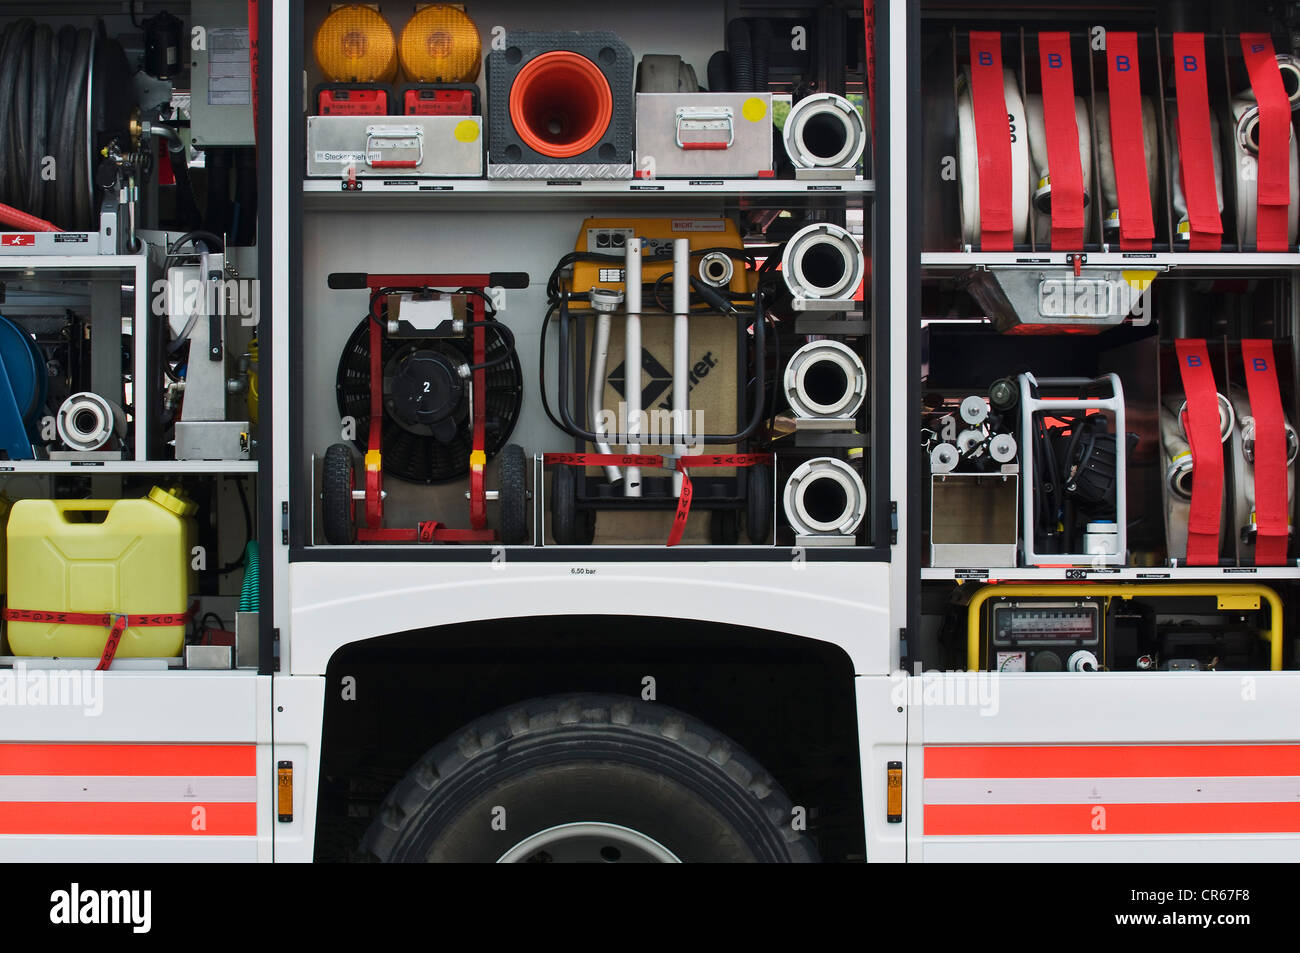 Stocked tool and gear wagon of the fire service, container, generator, cable reel, pump, warning lights, hose fittings, - Stock Image